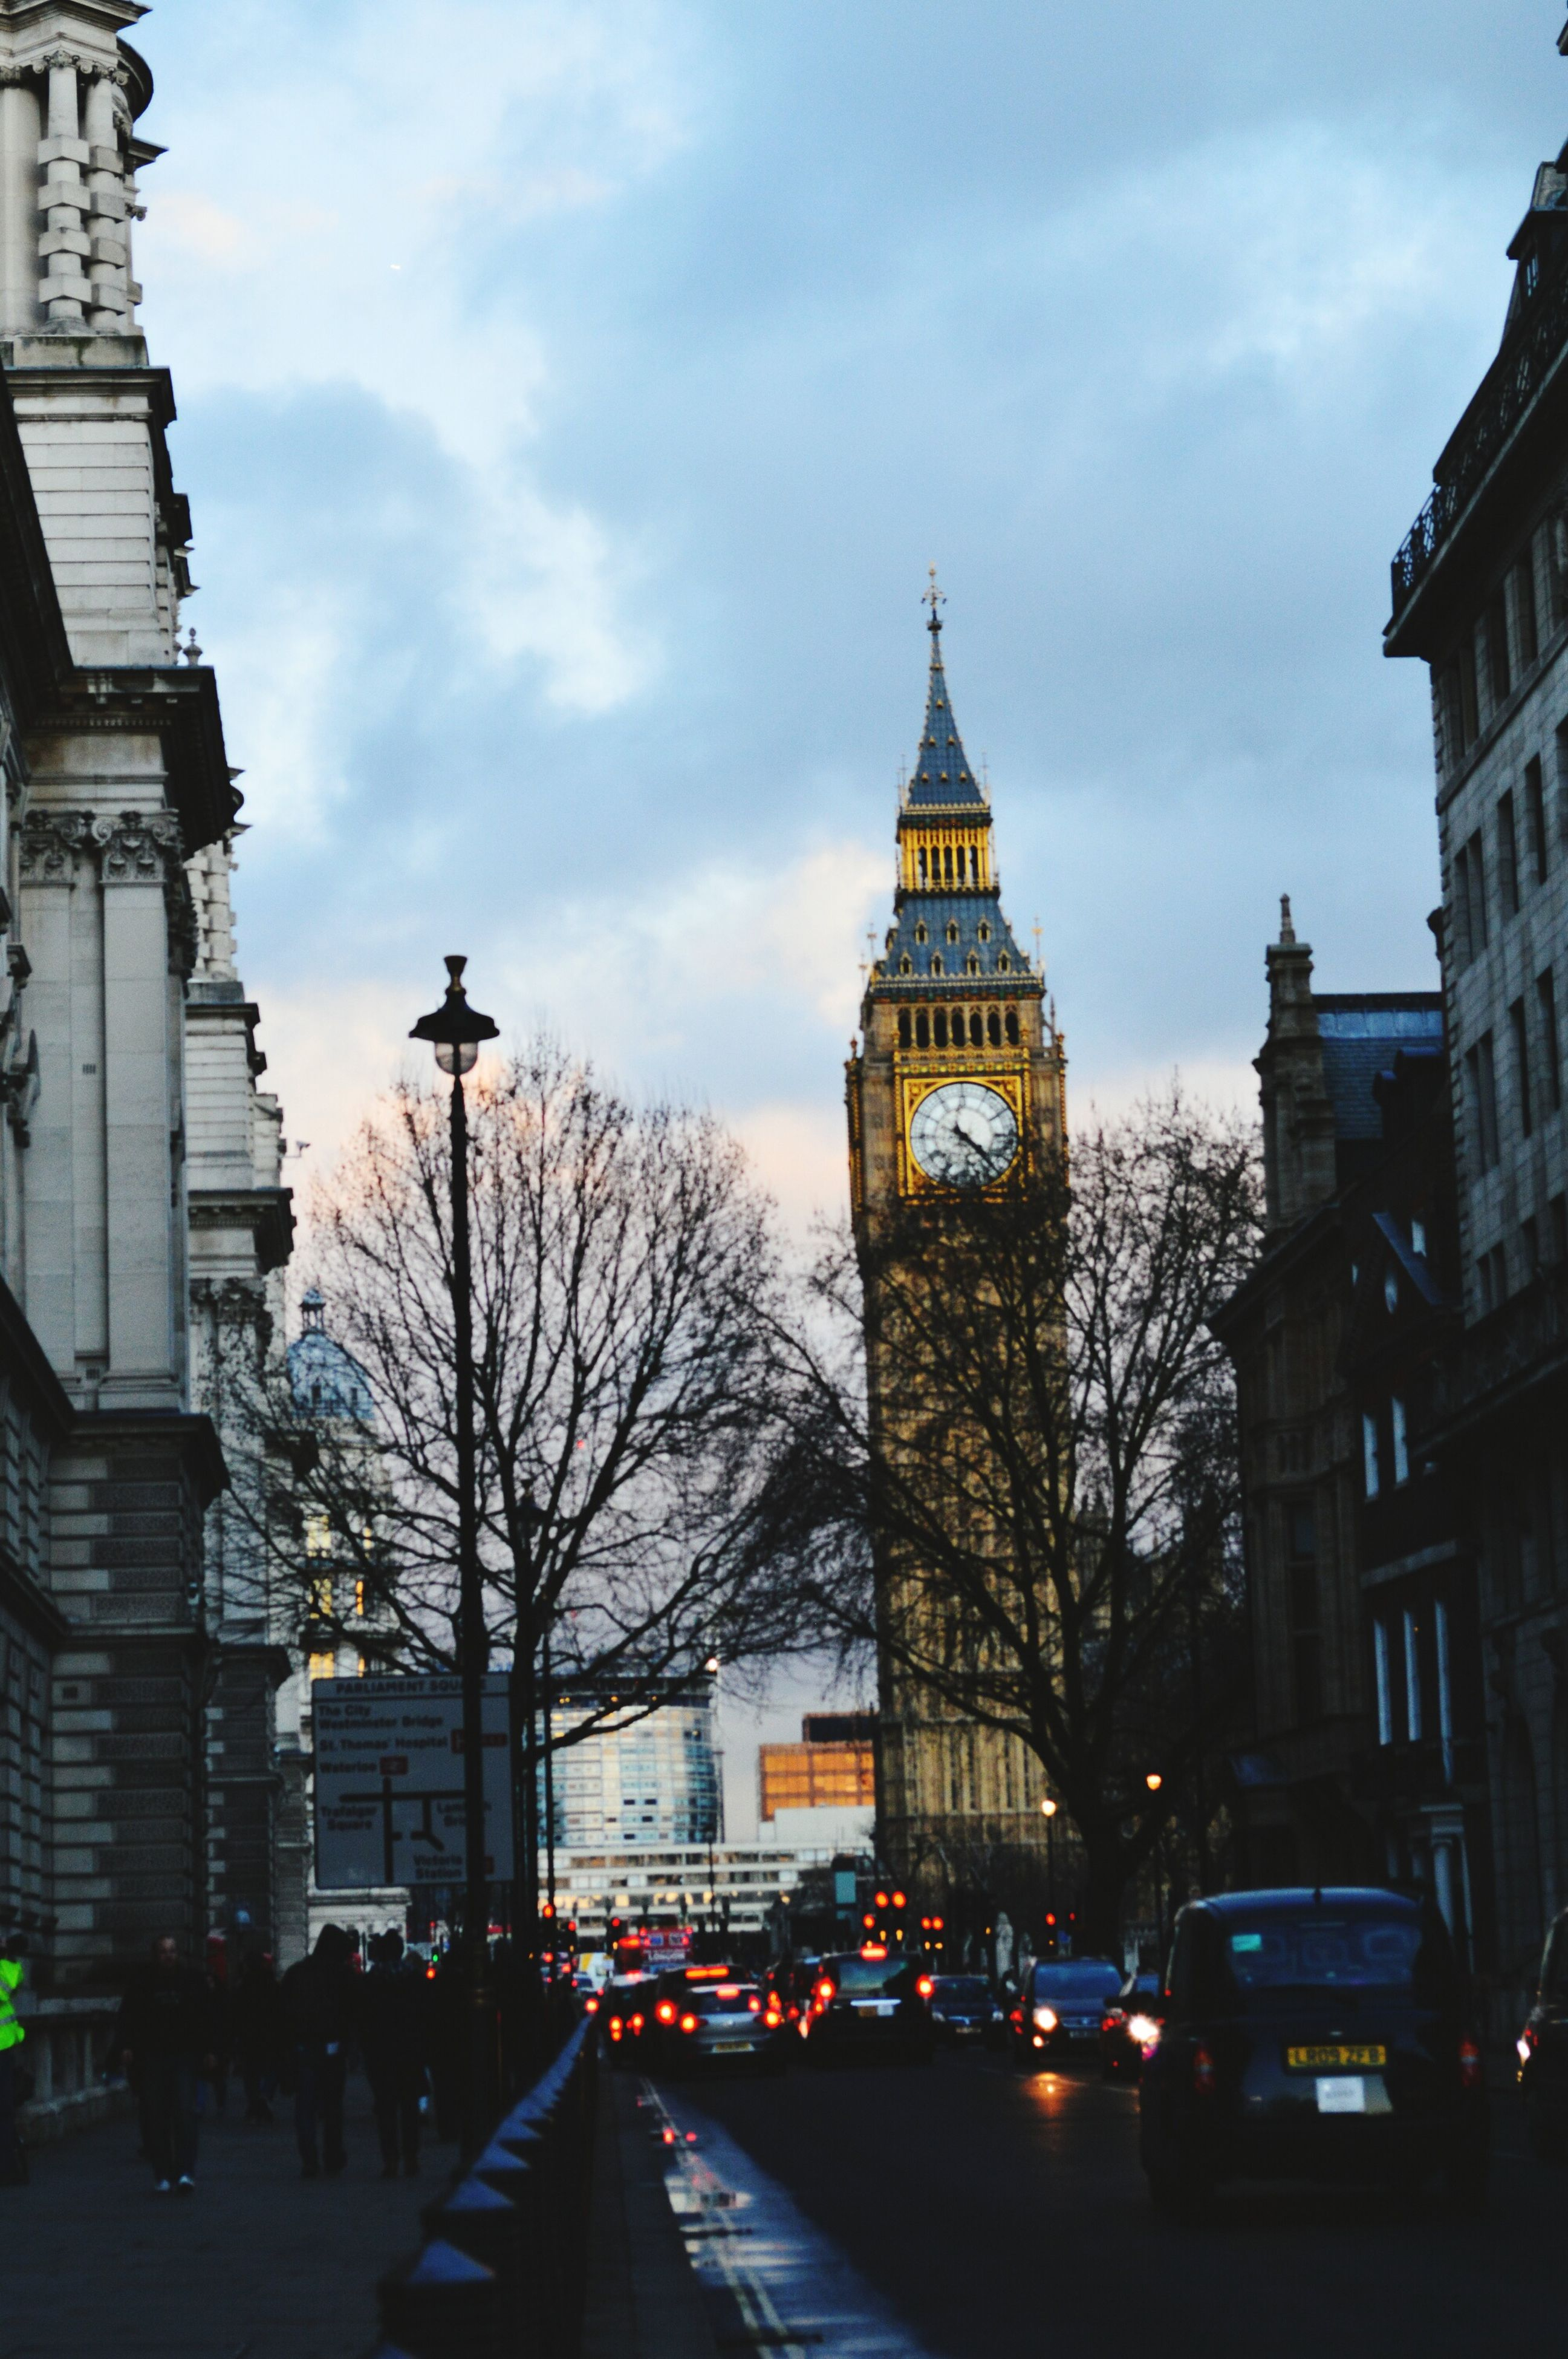 architecture, building exterior, built structure, city, street, car, sky, tower, transportation, city life, land vehicle, city street, road, travel destinations, tall - high, capital cities, clock tower, travel, famous place, incidental people